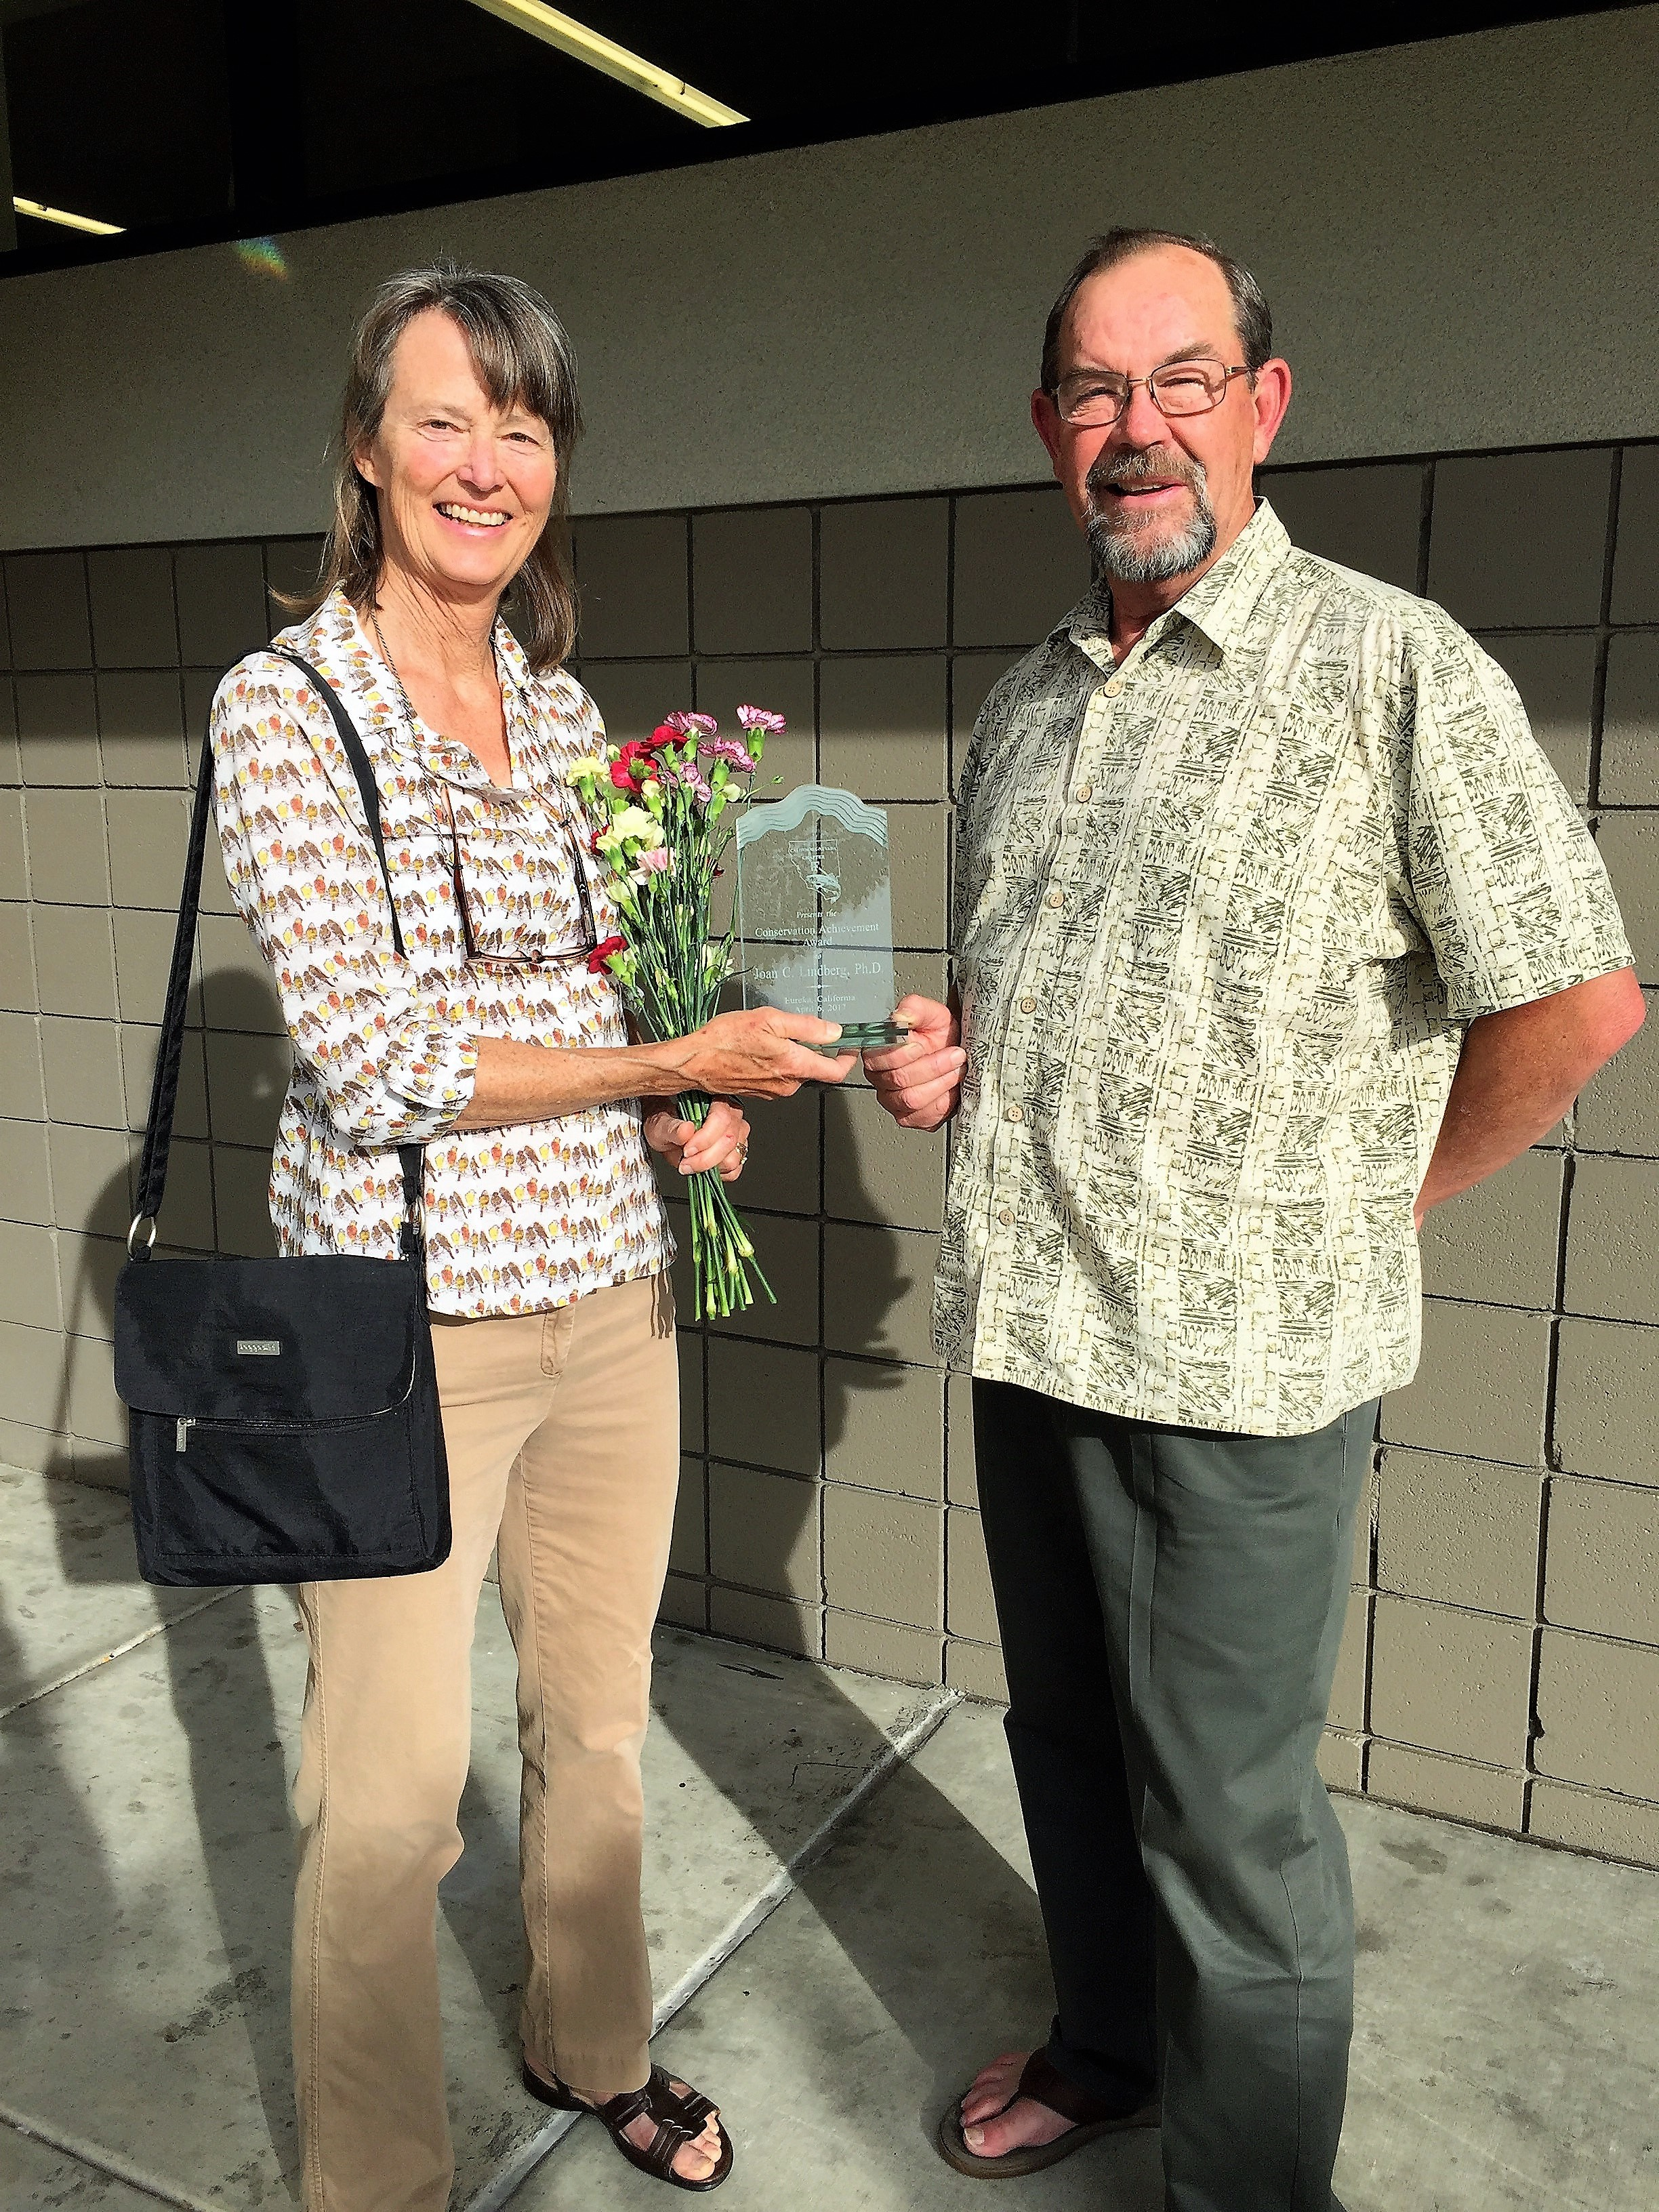 May 25th, 2017 Congratulations to our former director Dr. Lindberg, left, for winning the Conservation Achievement Award!